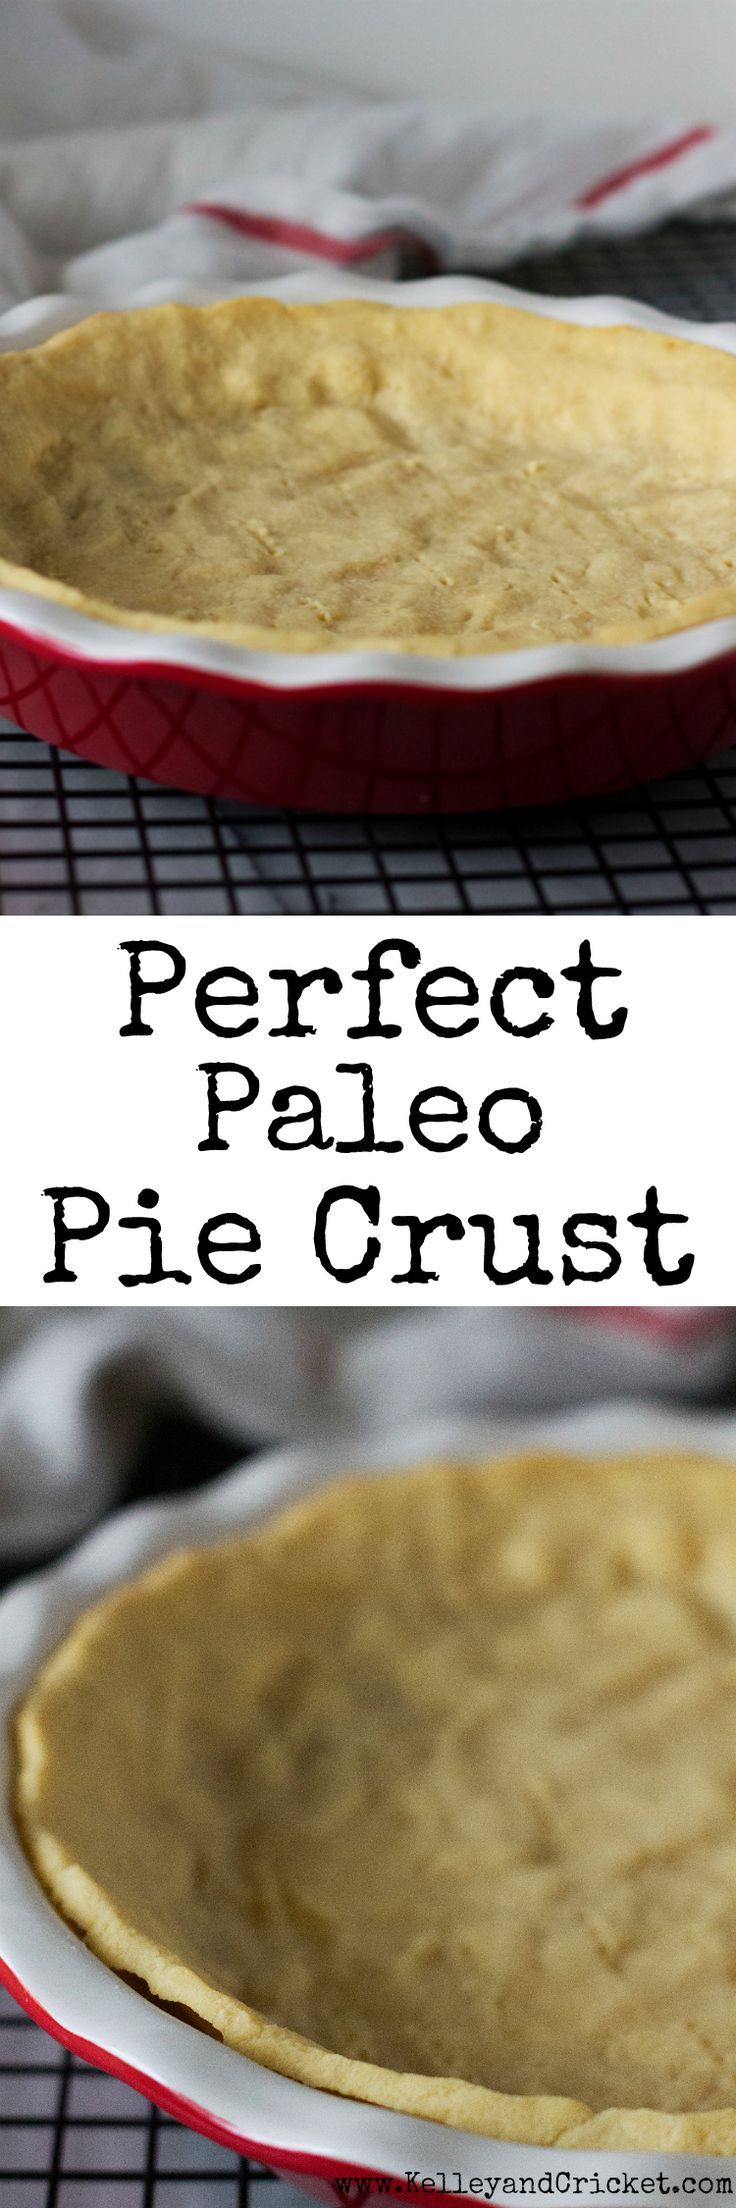 This flaky and buttery pie crust is the perfect compliment to your favorite pie. If you love traditional pie crust, this healthy and grain free version will surely satisfy you because it is just like the real deal! Best of all its super easy to make with only a handful of simple healthy ingredients! (Gluten free, grain free, paleo)